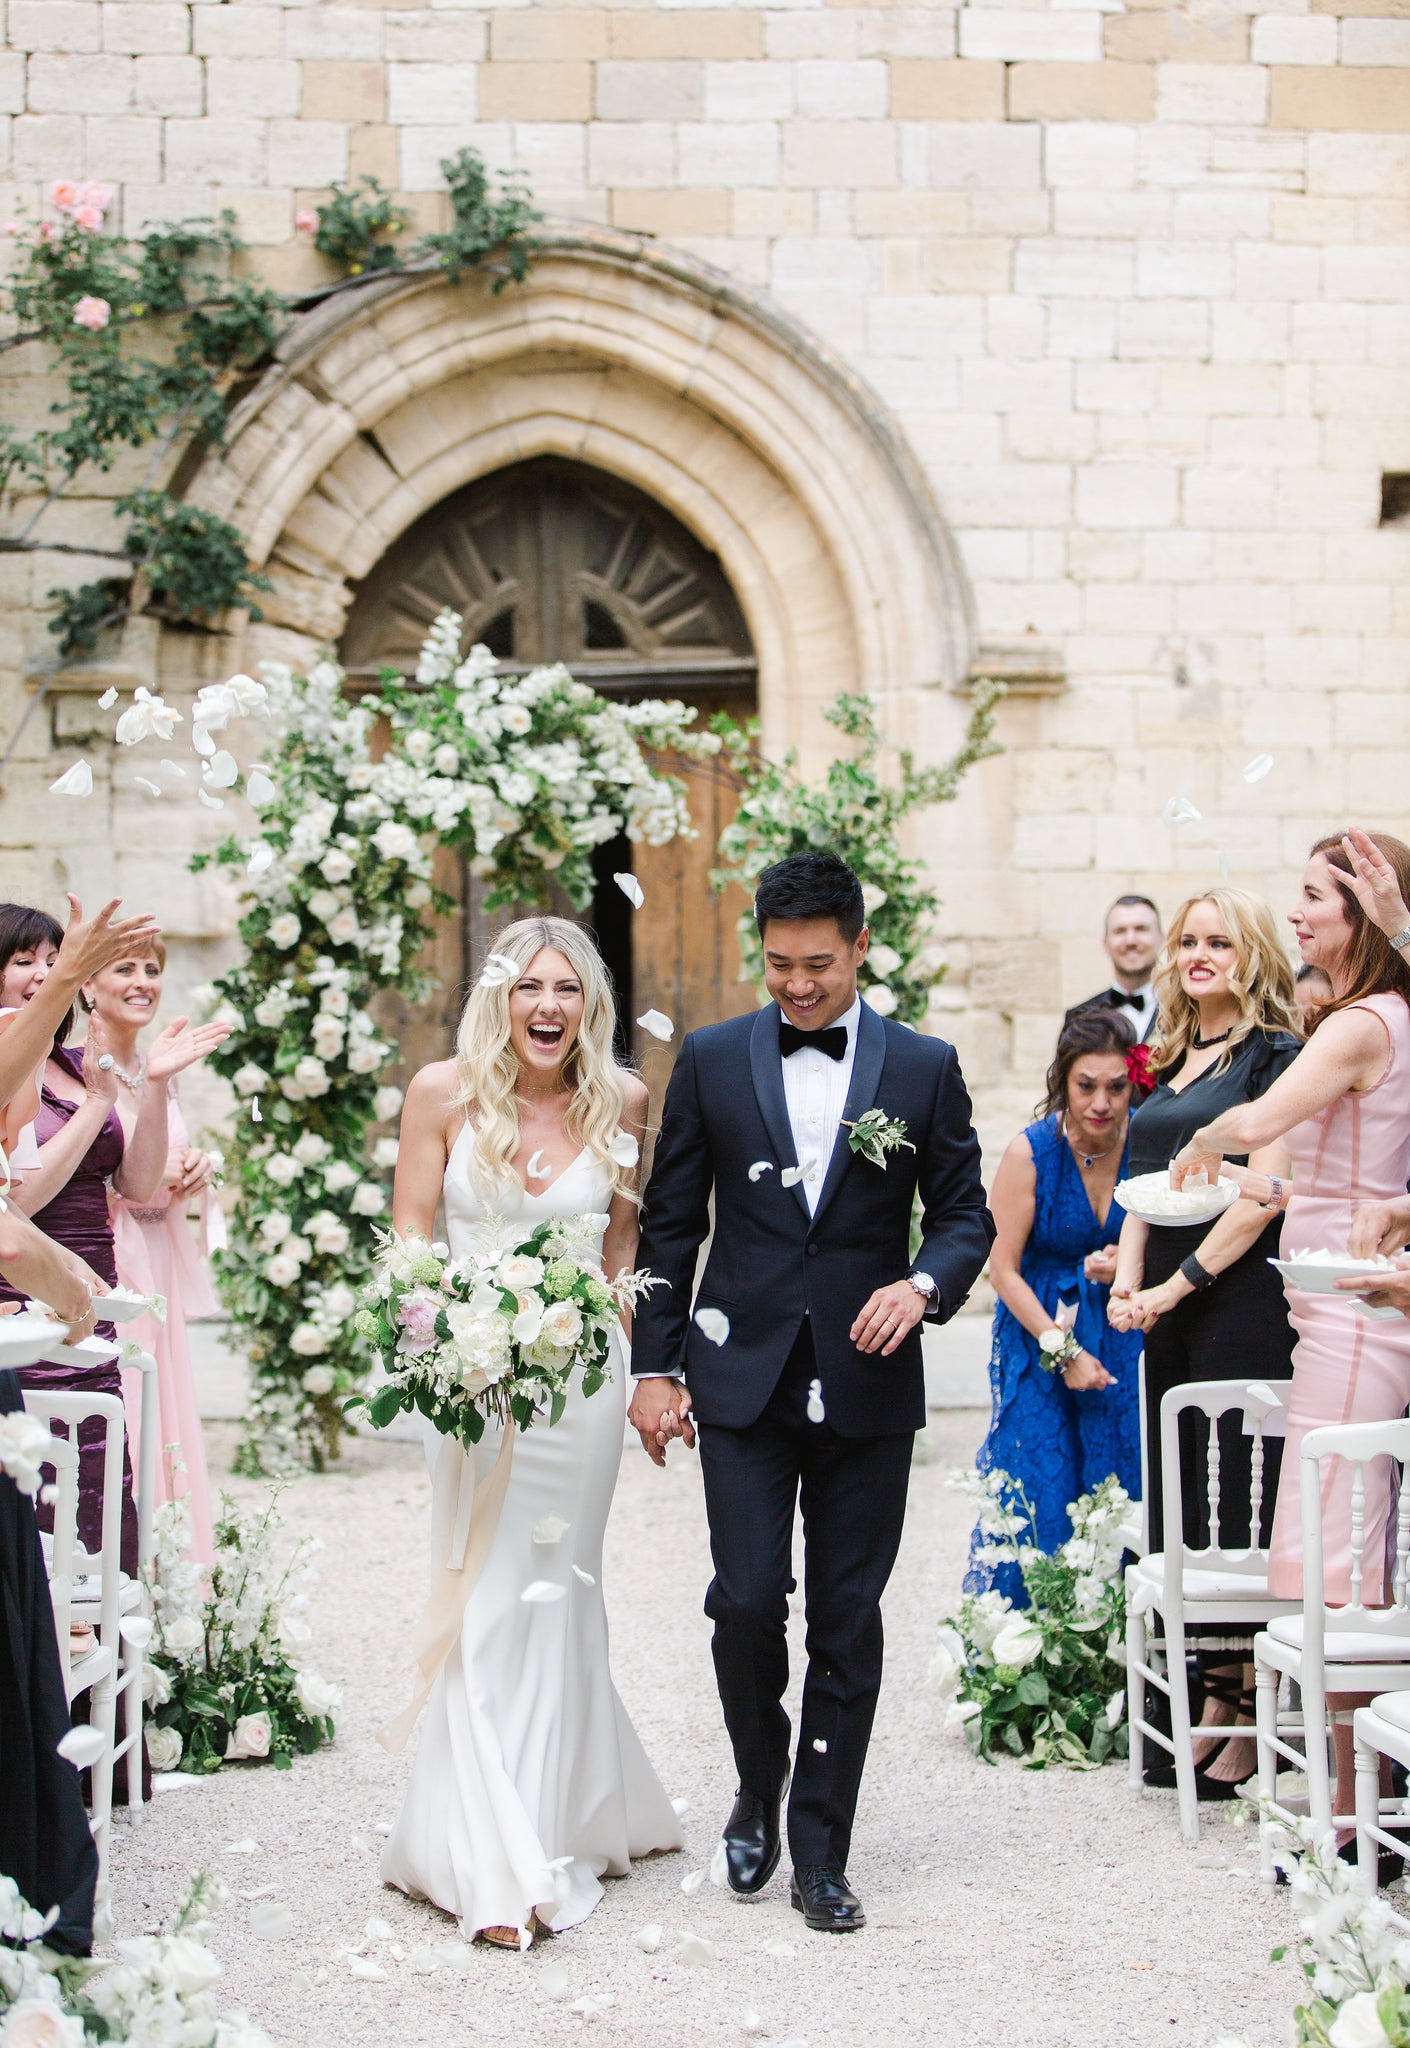 Katie Dean + Jon Tam Destination wedding, Provence, France Wedding, rose petals